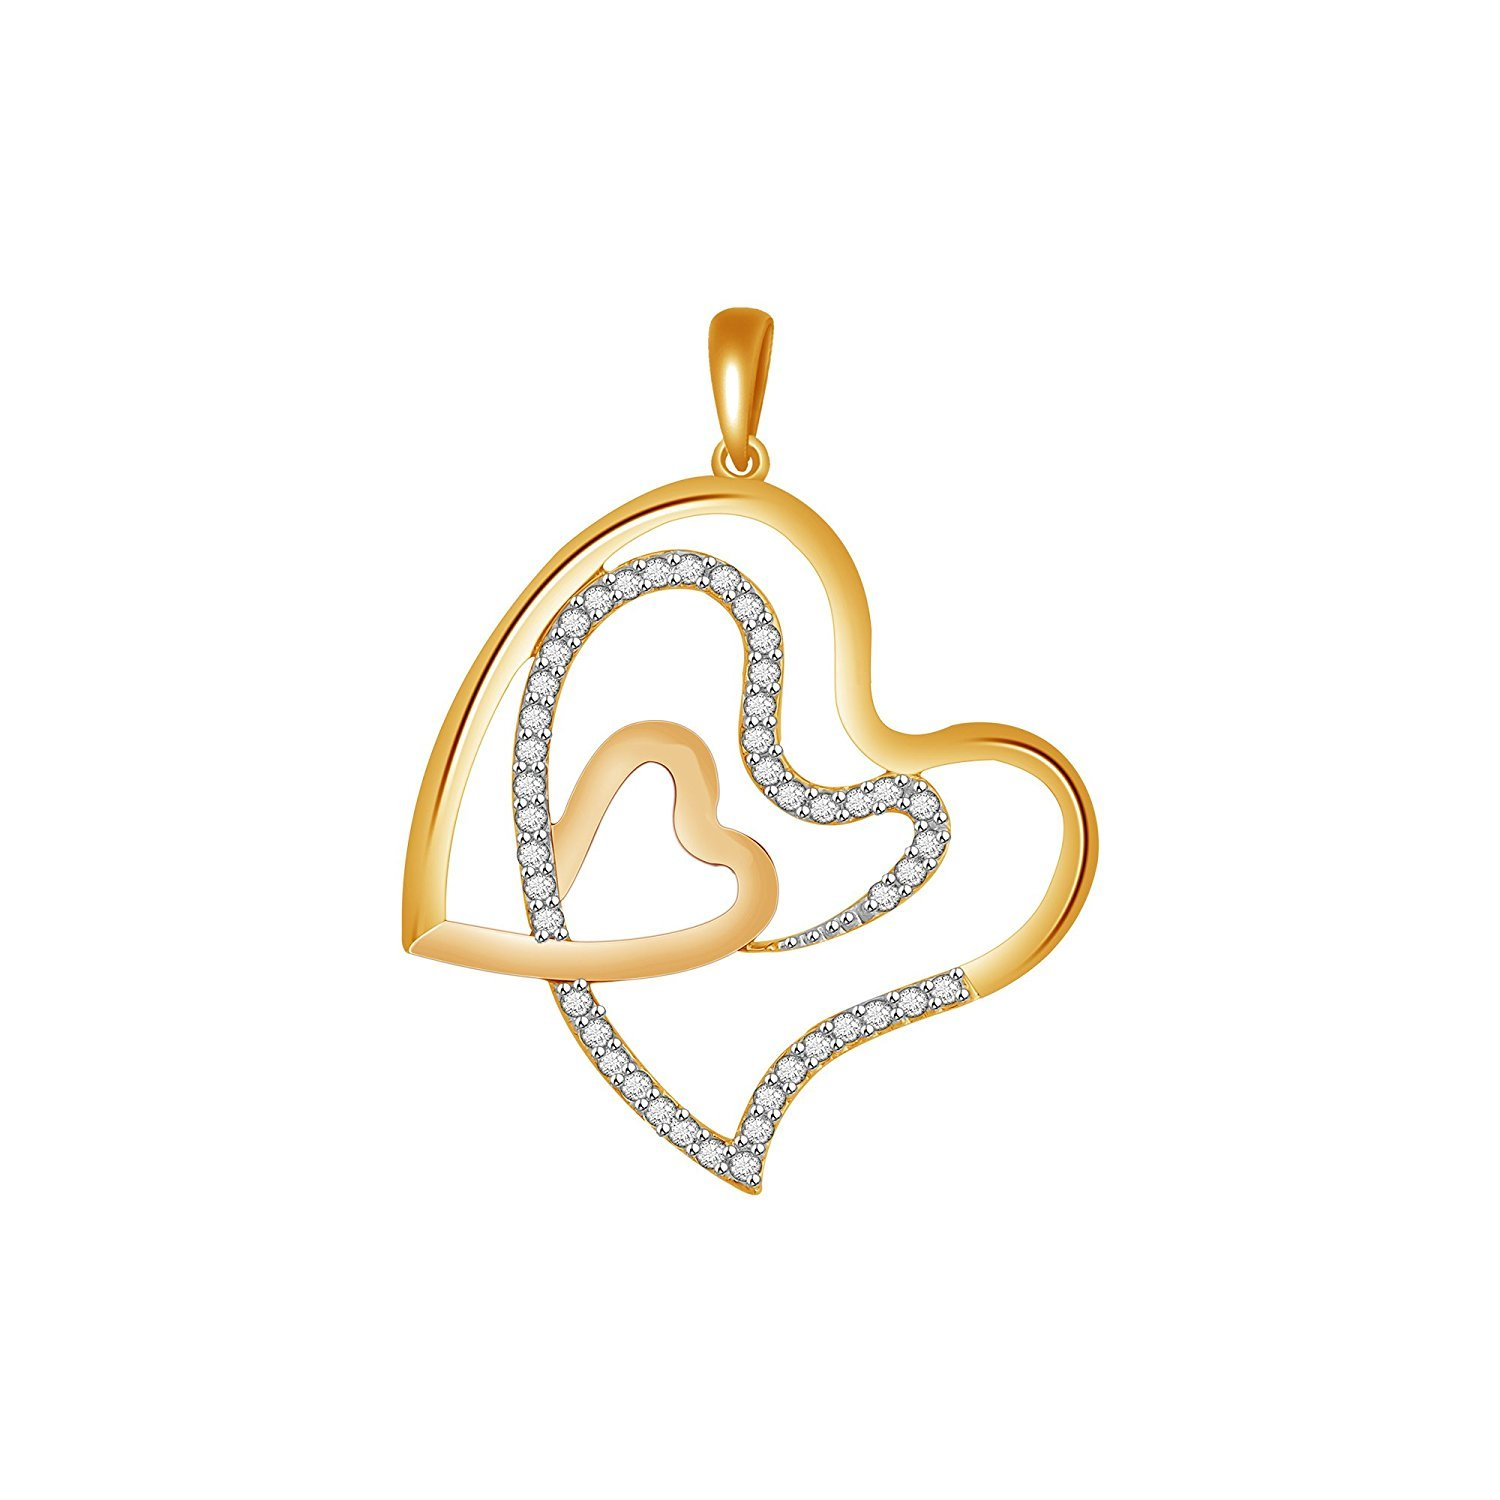 Suhana Jewellery Simulated Diamond Studded Love Promise Heart Pendant Necklace in 14K White Gold Plated With Box Chain